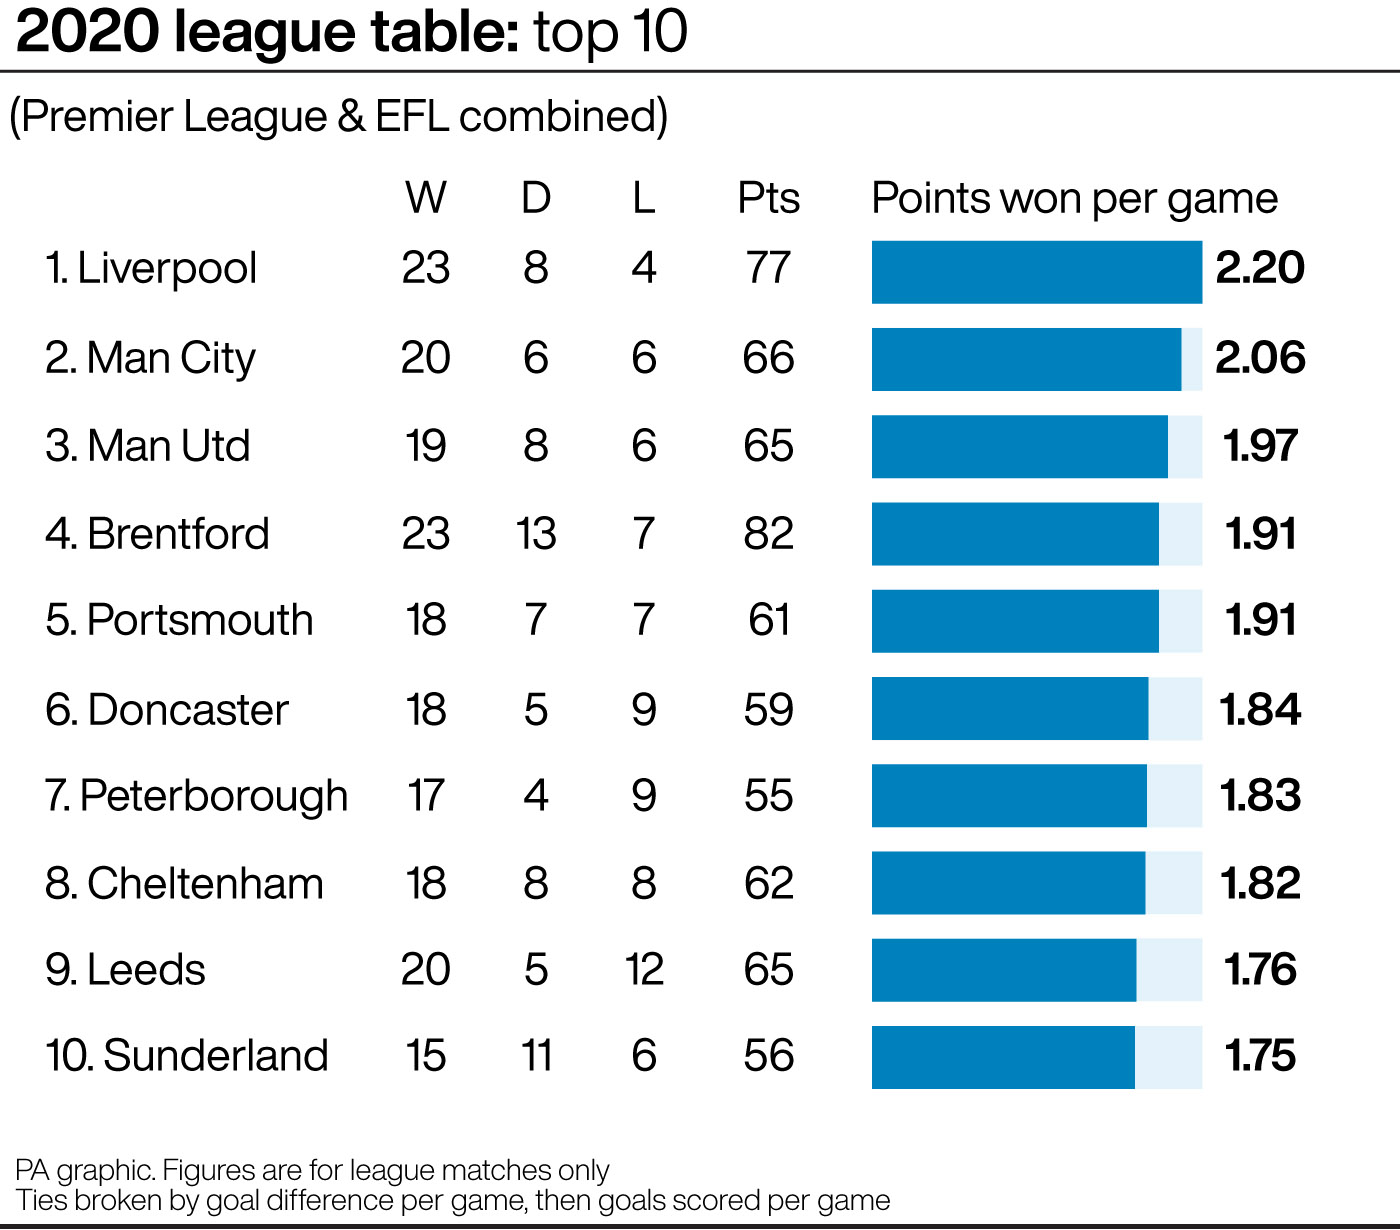 A graphic showing the top 10 in the 2020 league table